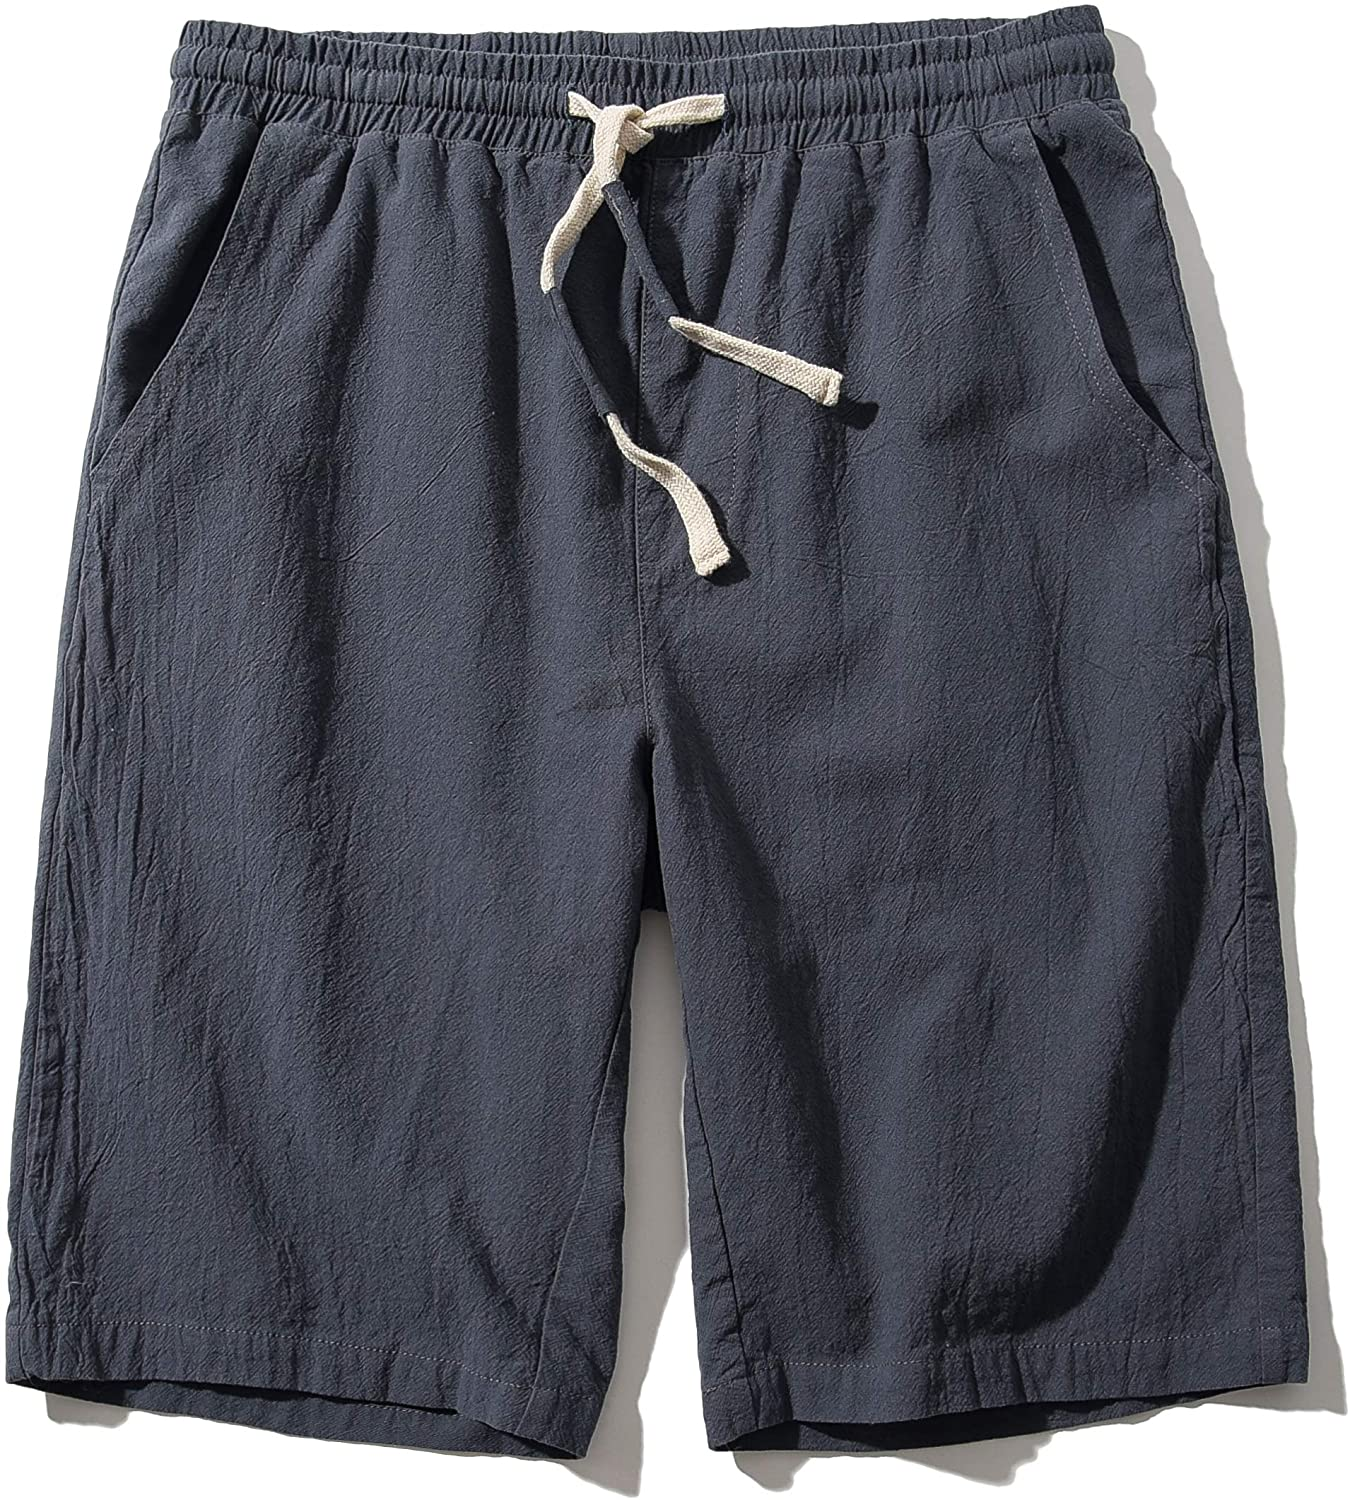 Men's Linen Casual Classic Fit 11 Inch Inseam Elastic Waist Shorts with Drawstring